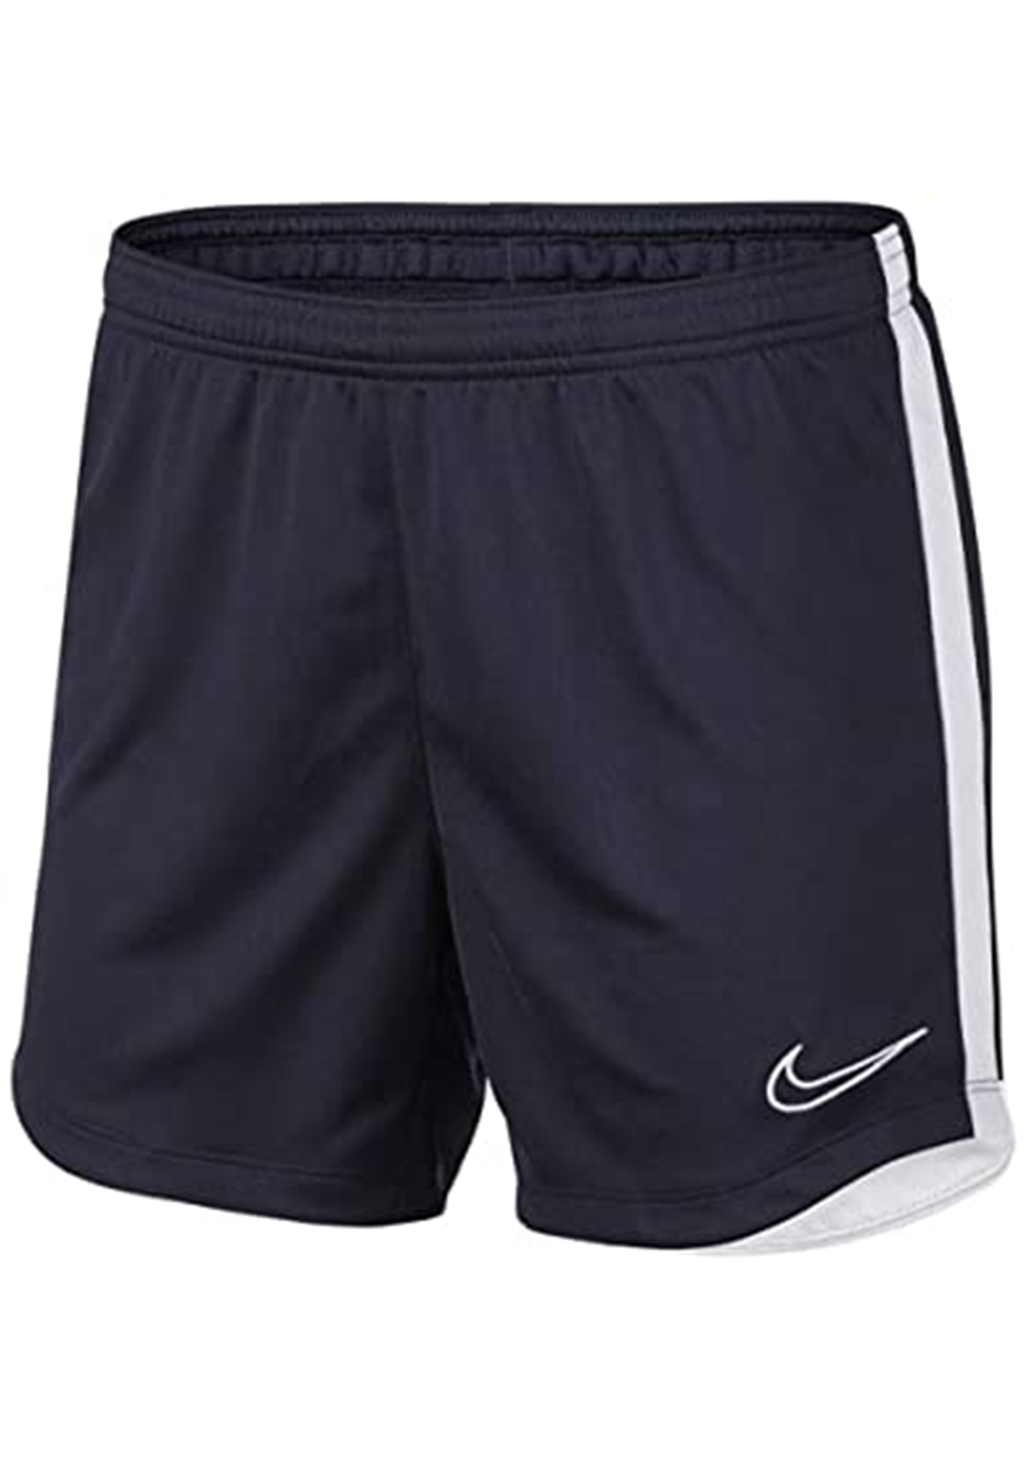 NIKE WOMENS DRI-FIT ACADEMY SHORTS NAVY <BR> AQ1780 451